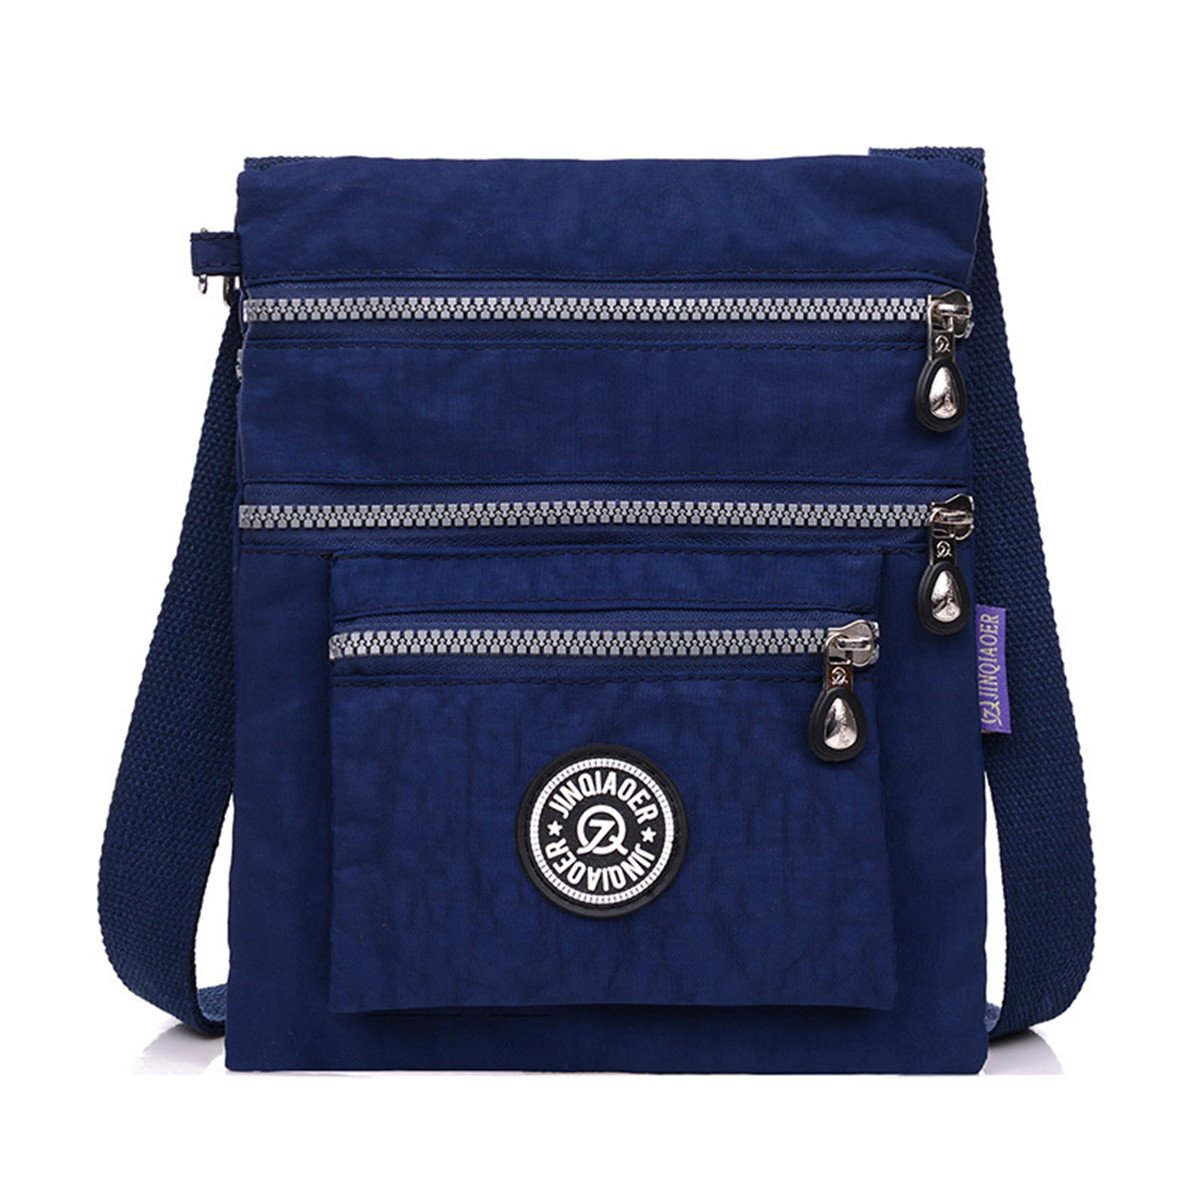 TianHengYi Small Water Resistant Nylon Cross-body Shoulder Bag Multilayers Navy Blue